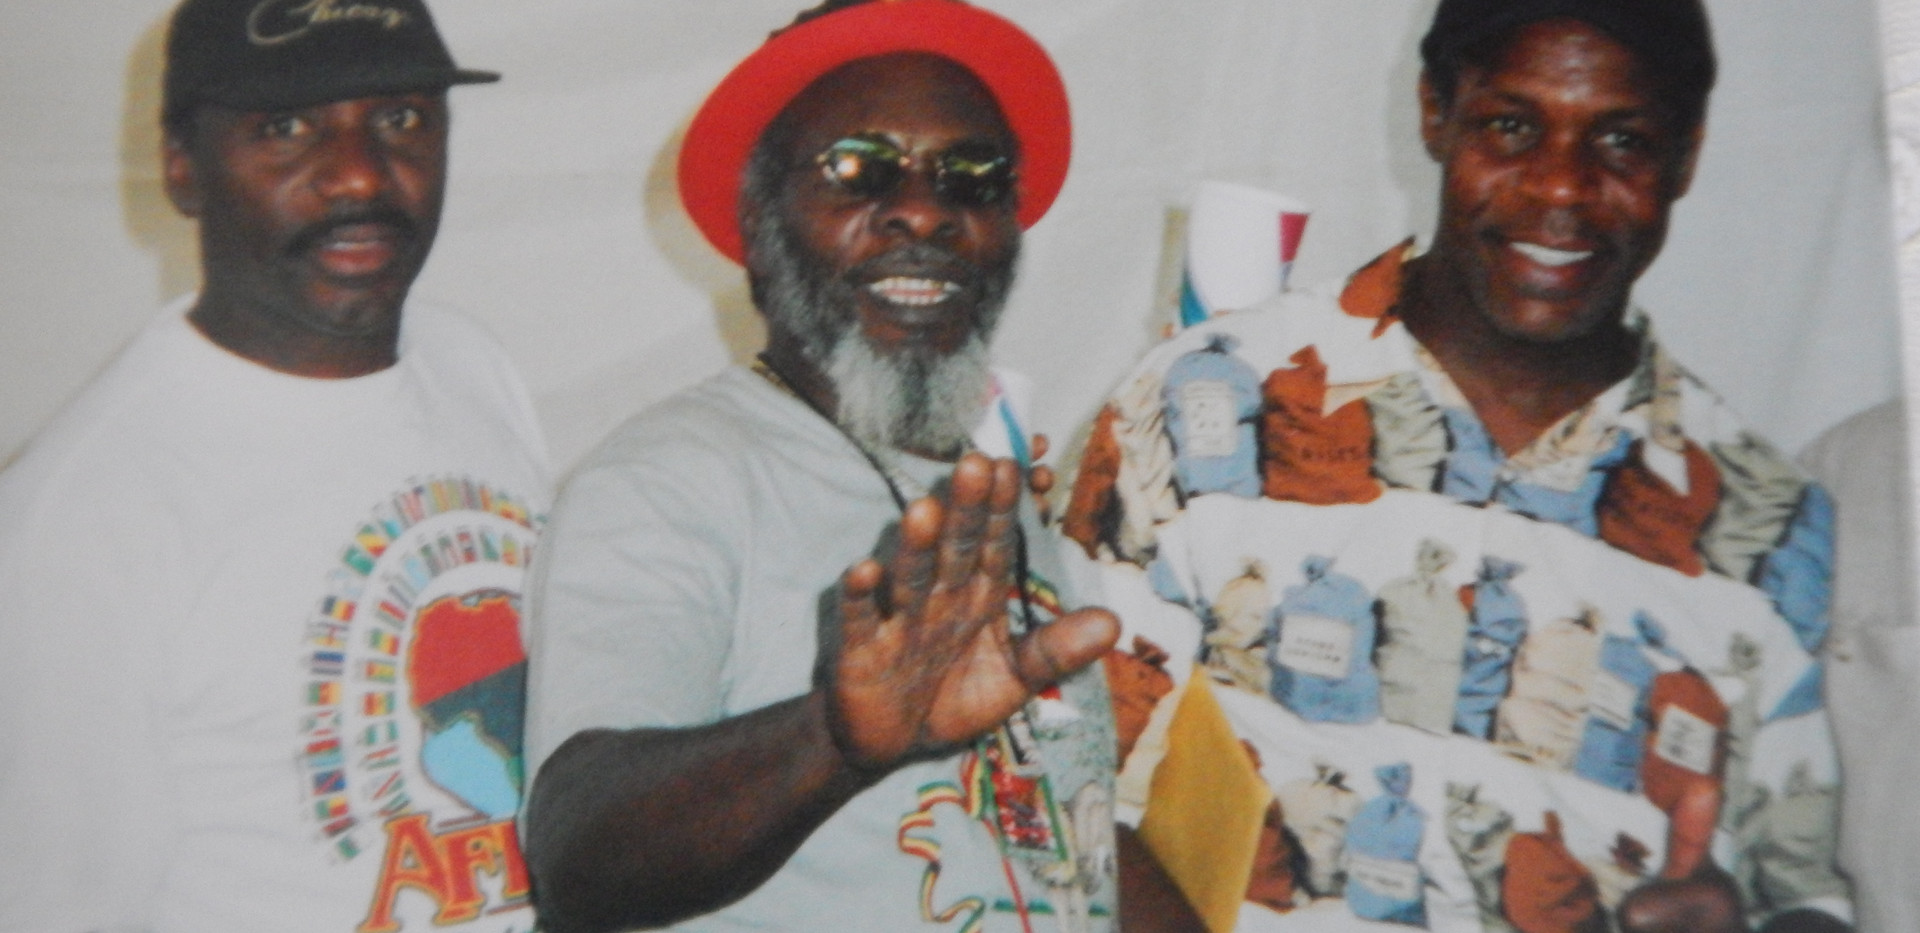 Reggae on the river with Ras and actor Danny Glover